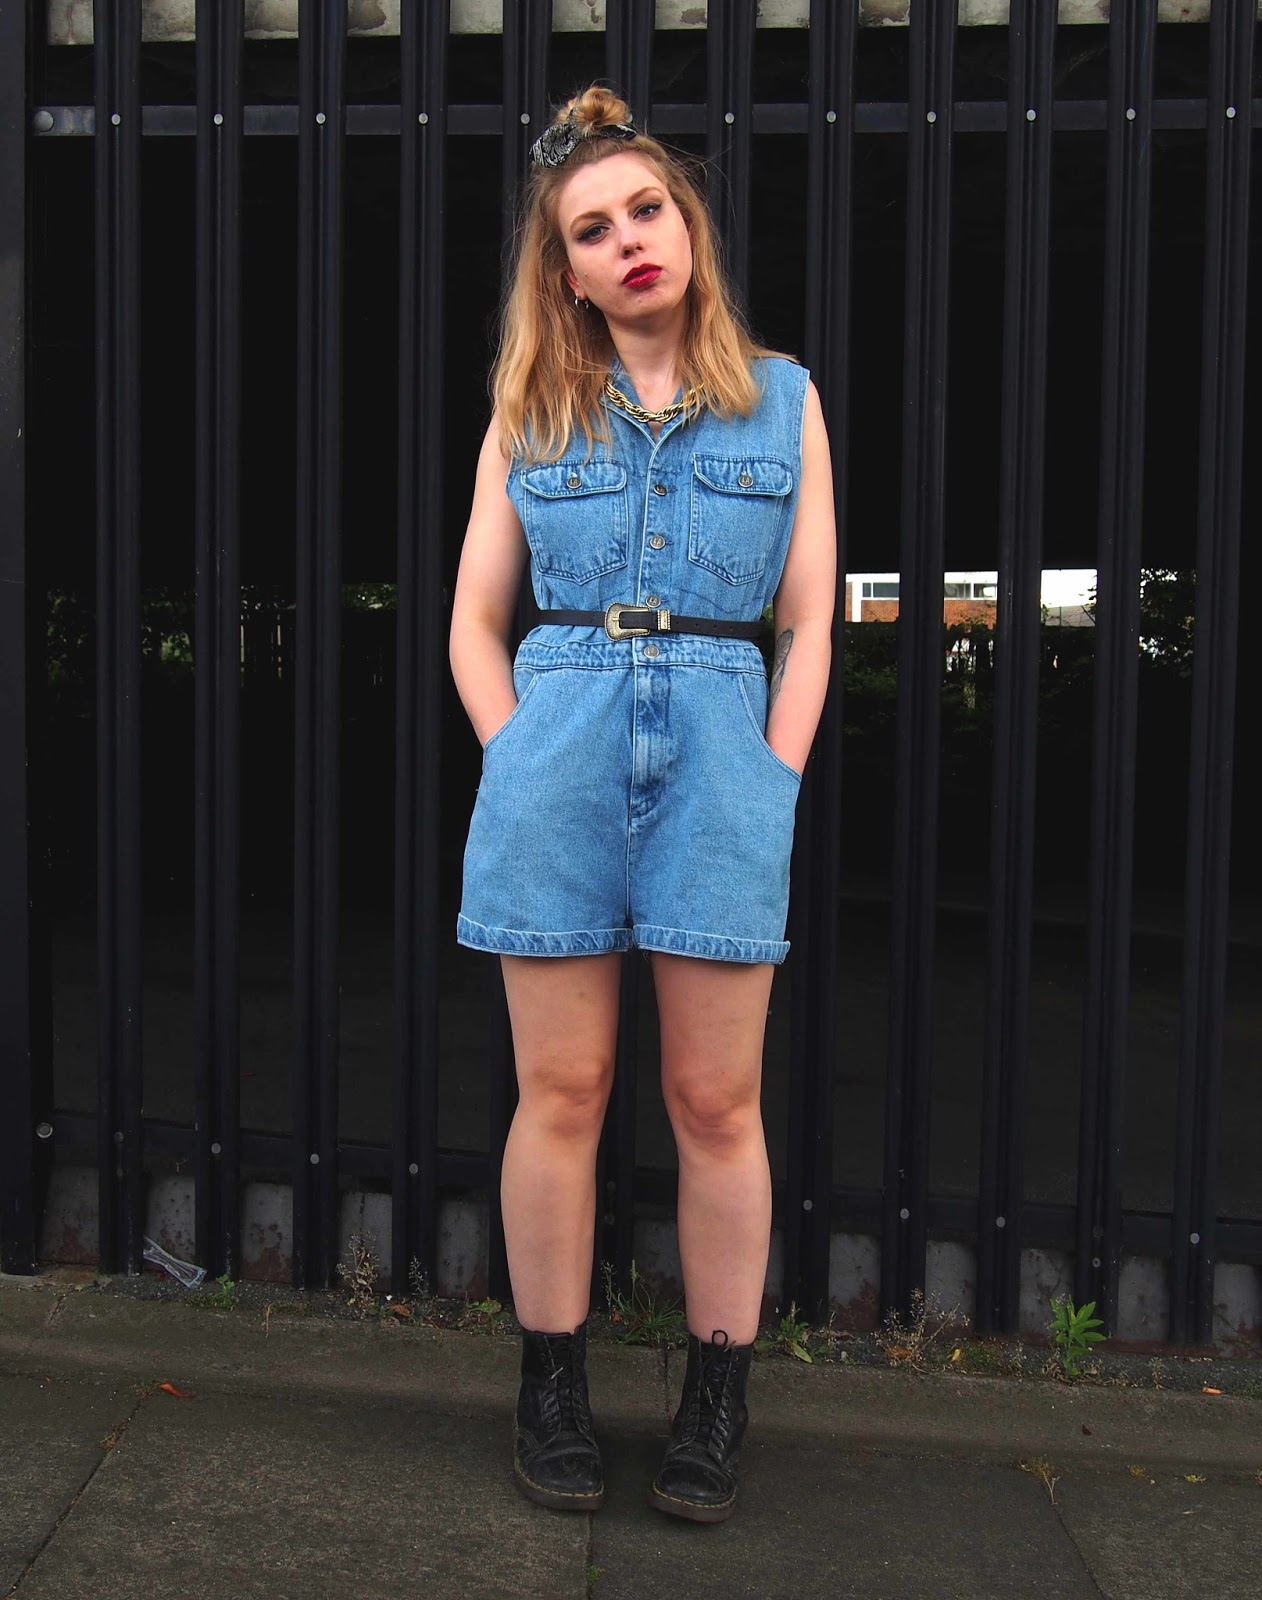 rokit vintage, vintage denim playsuit, vintage gold chain necklace, dr martens, festival inspiration outfit ootd, festival fashion style, vintage summer outfit ootd 1